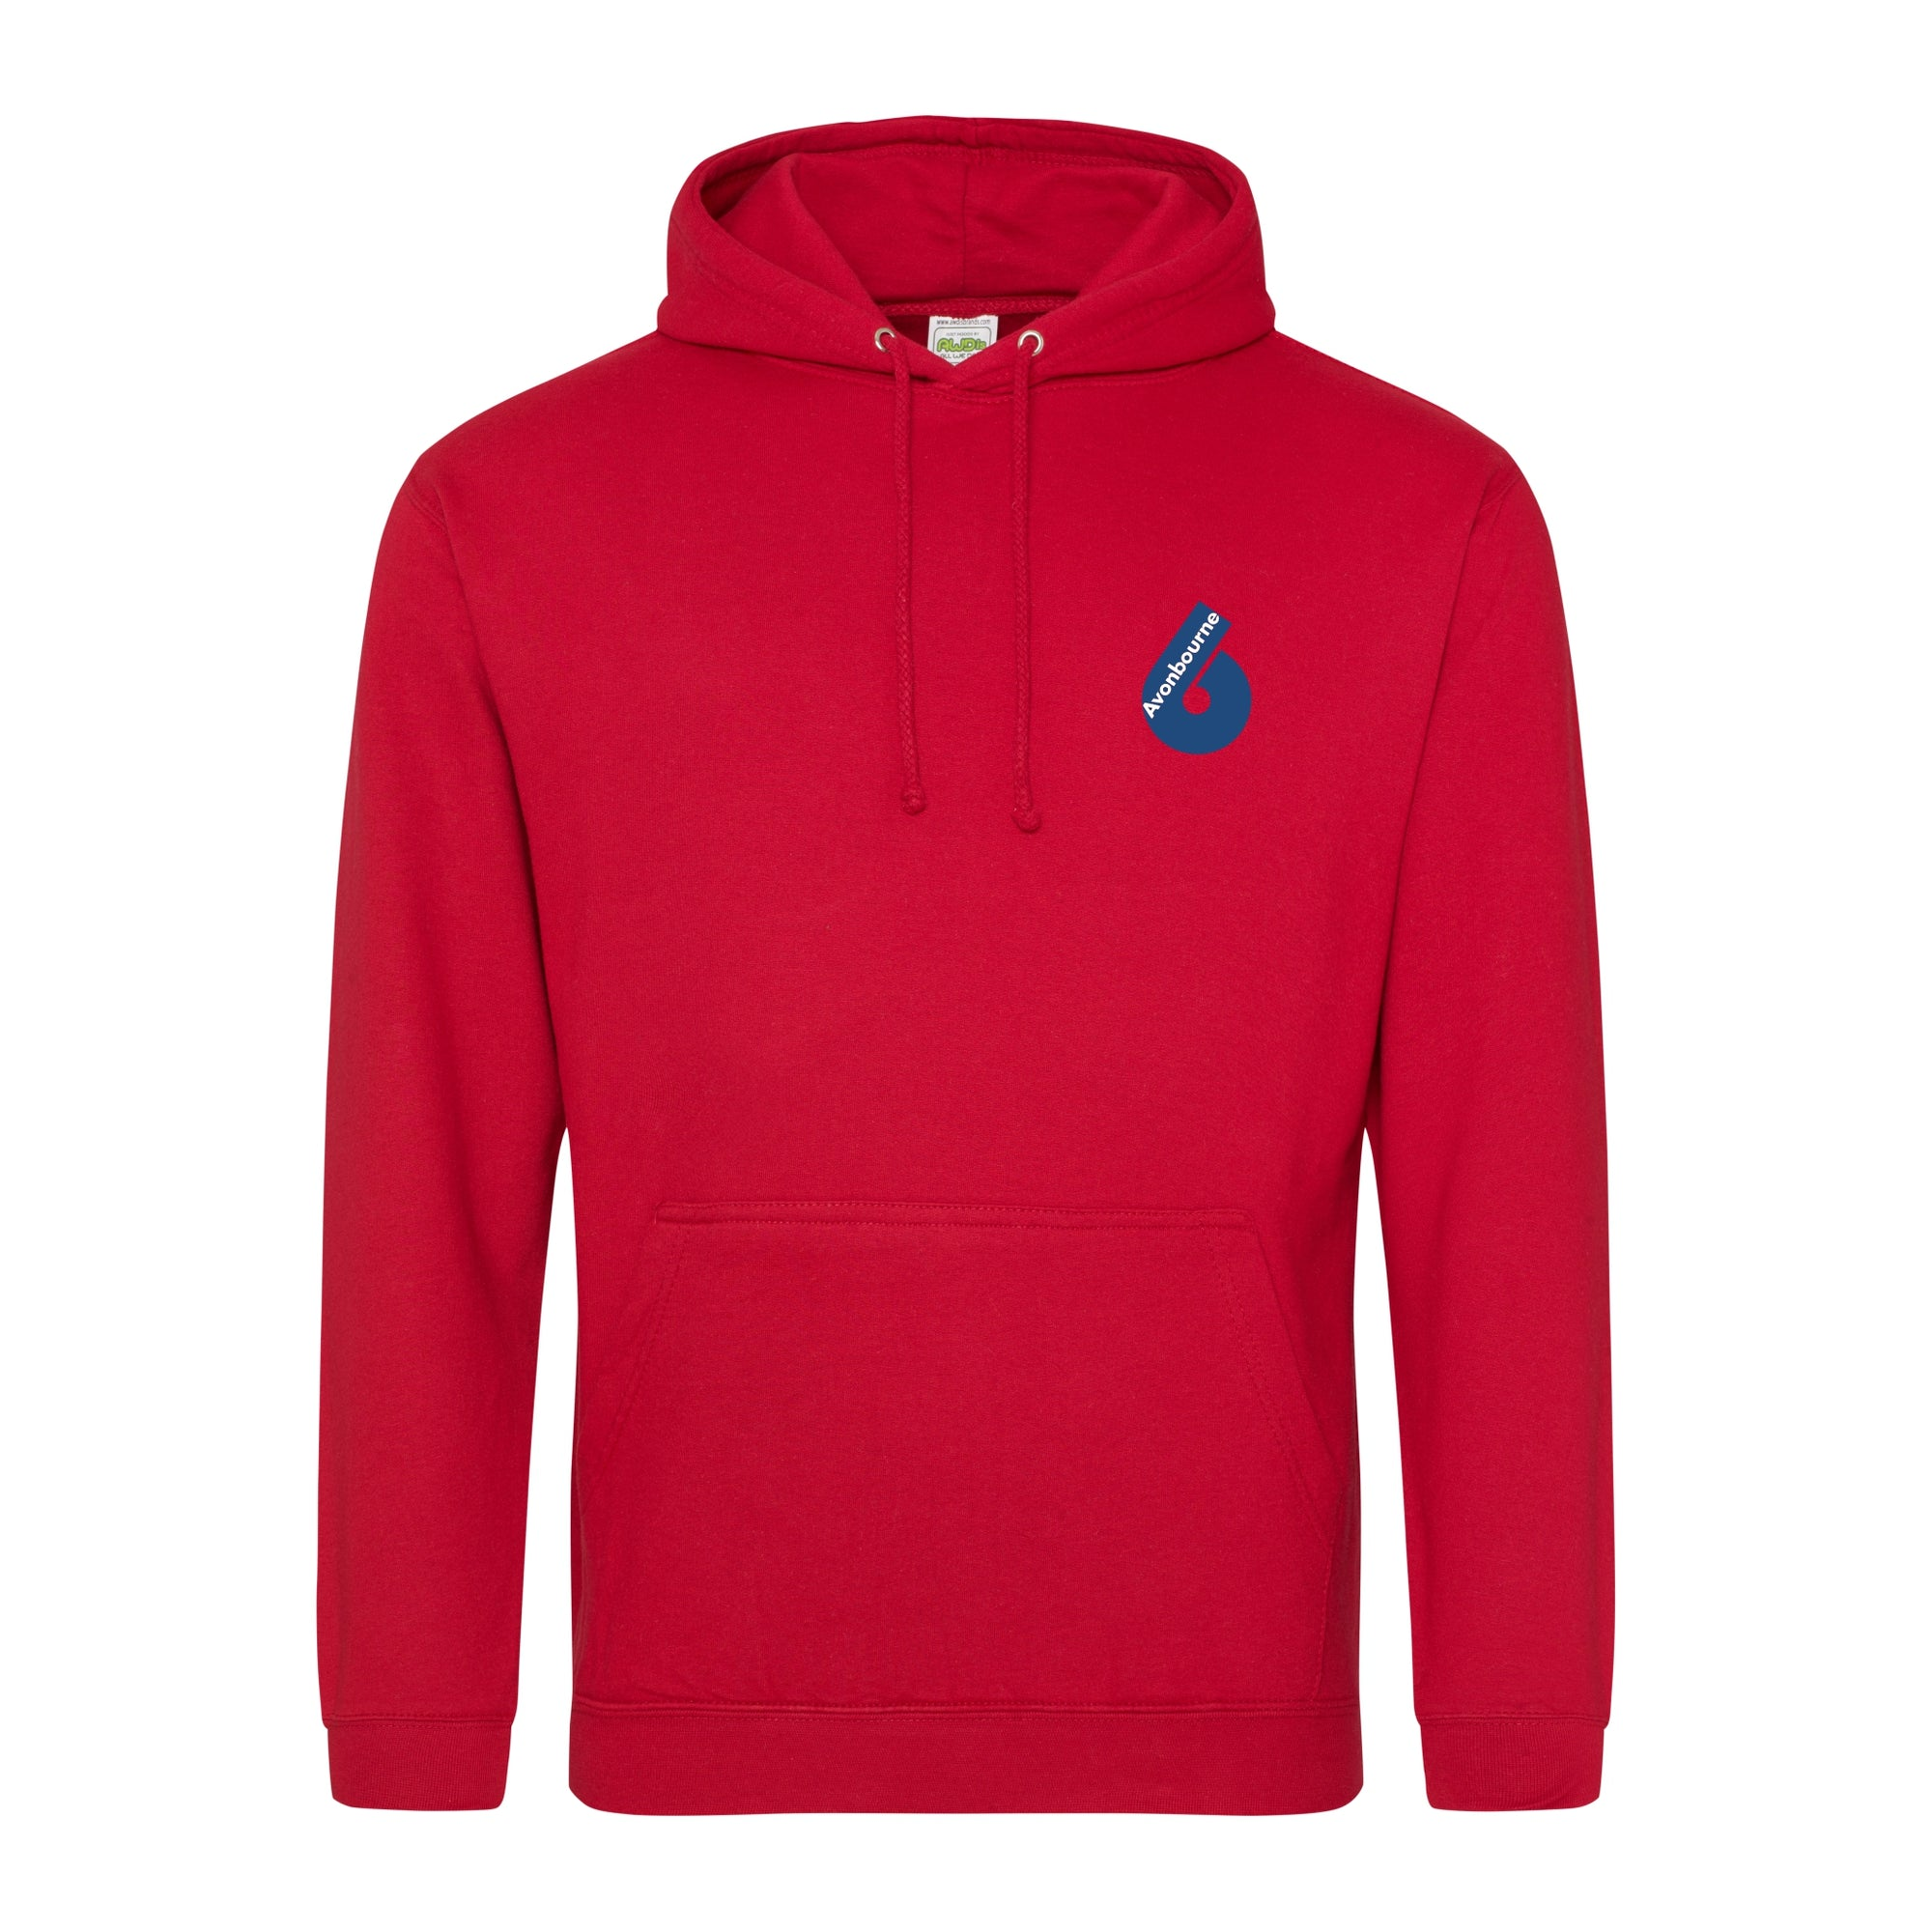 Avonbourne 6th Form Leavers Hoody 2019 - Fire Red